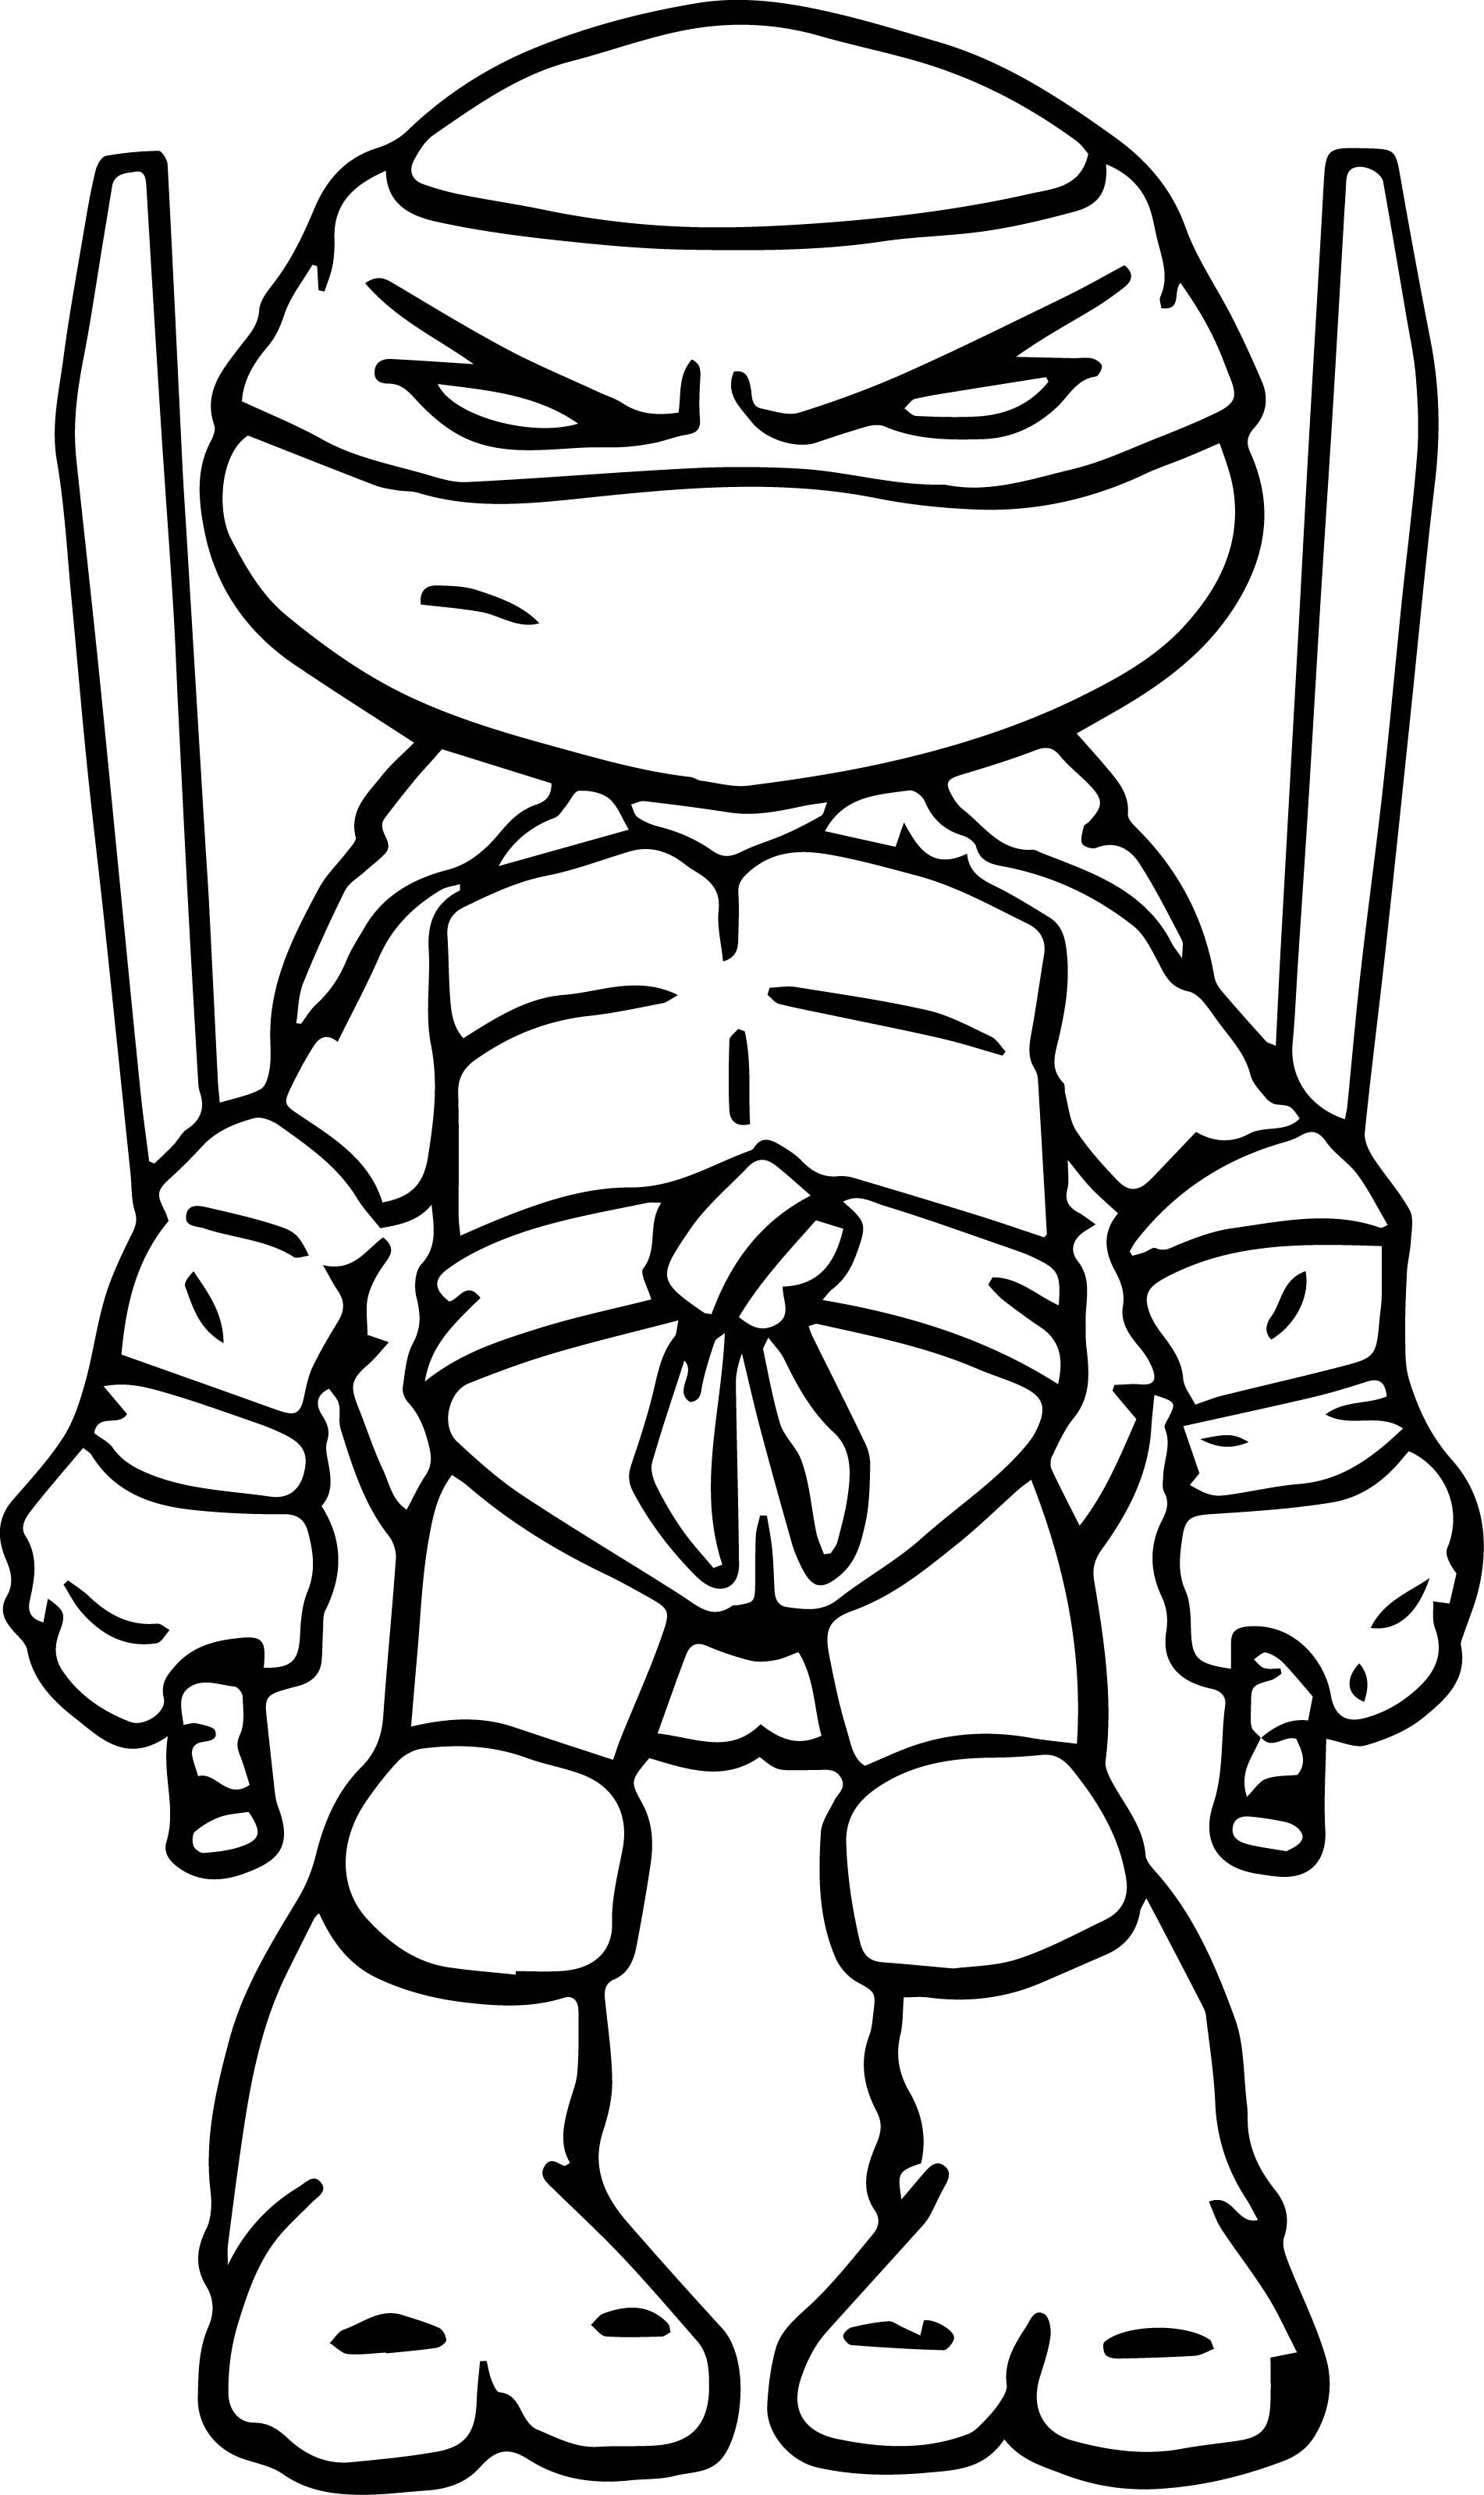 Ninja-Turtles-Art-Coloring-Page | Ninja turtles art, Ninja turtles ...